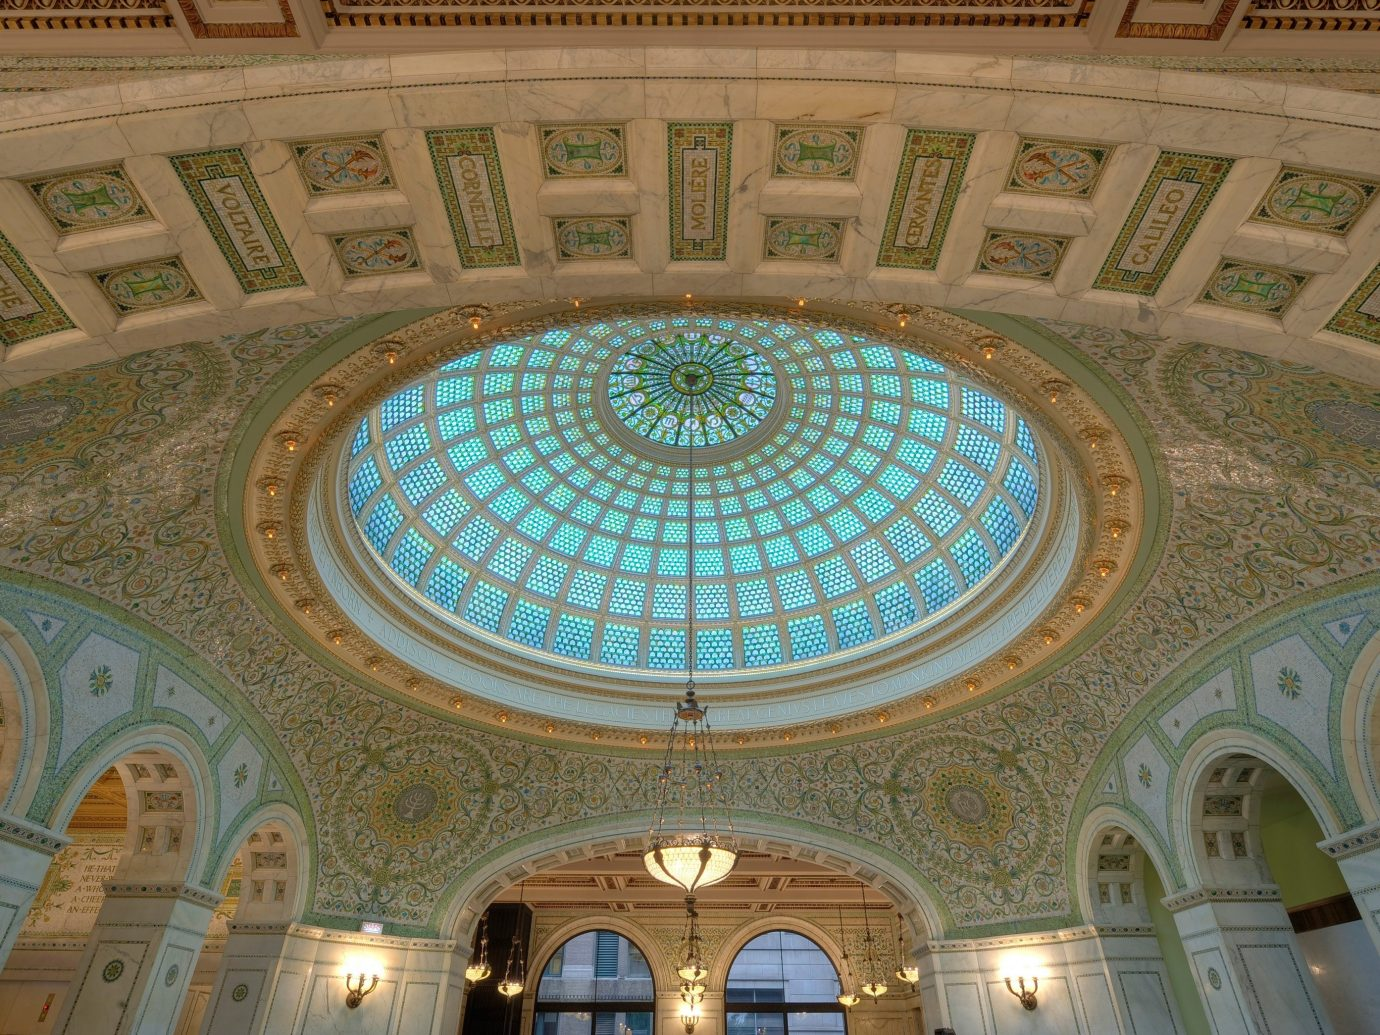 Budget indoor dome structure building mosque ceiling daylighting palace place of worship symmetry estate hall